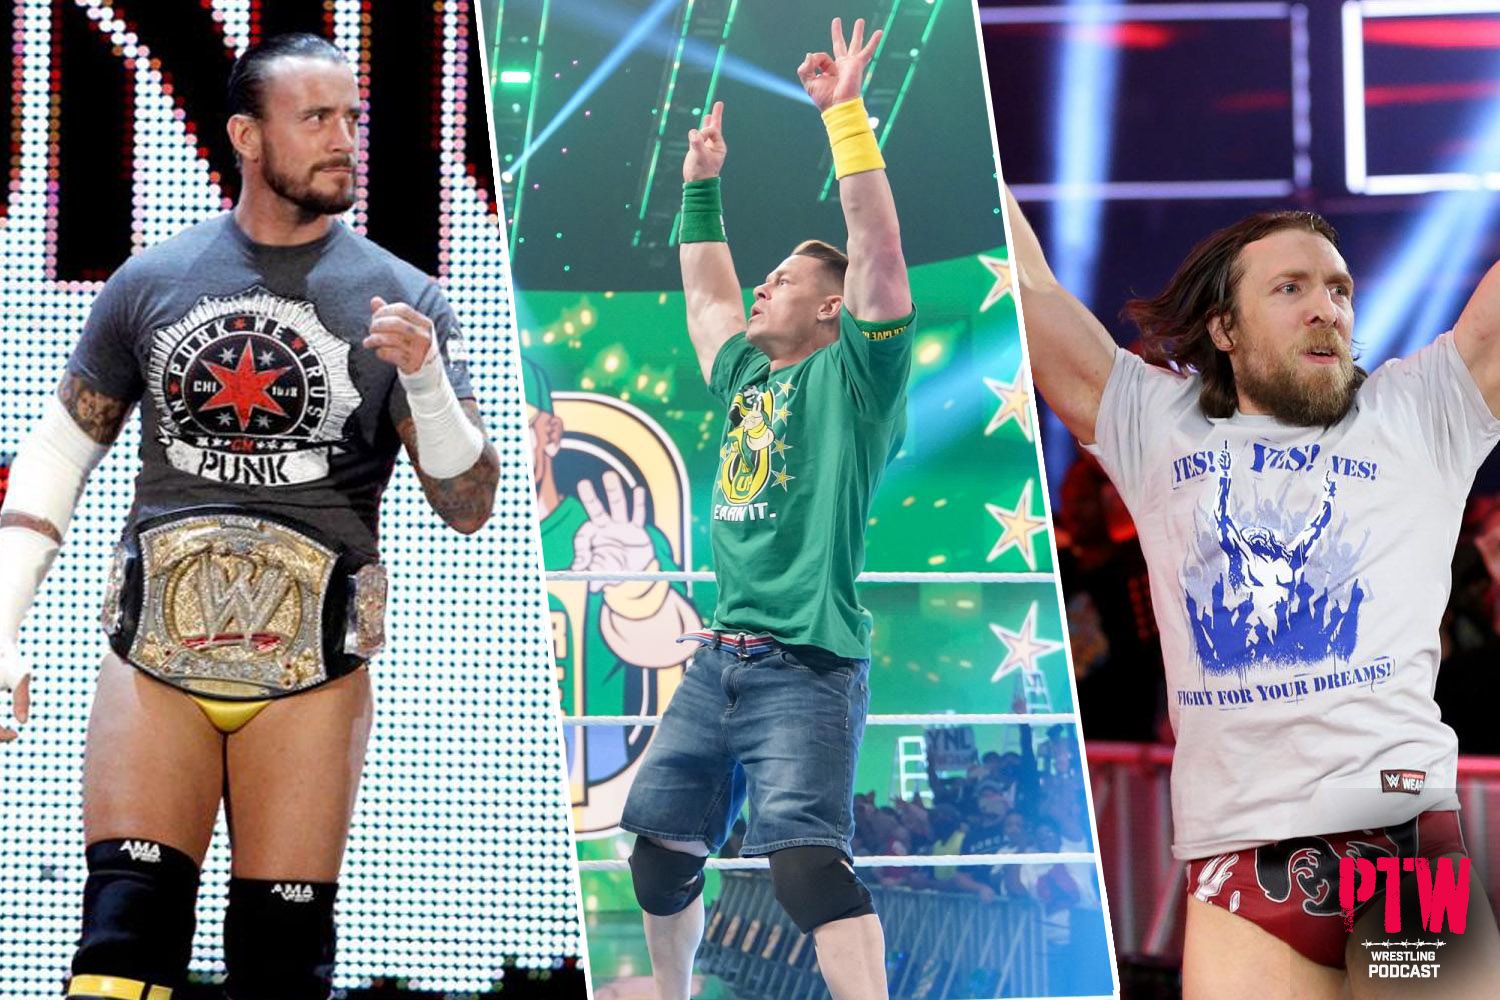 PTW Wrestling Podcast episode 164: Yes! Yes! ...Maybe?